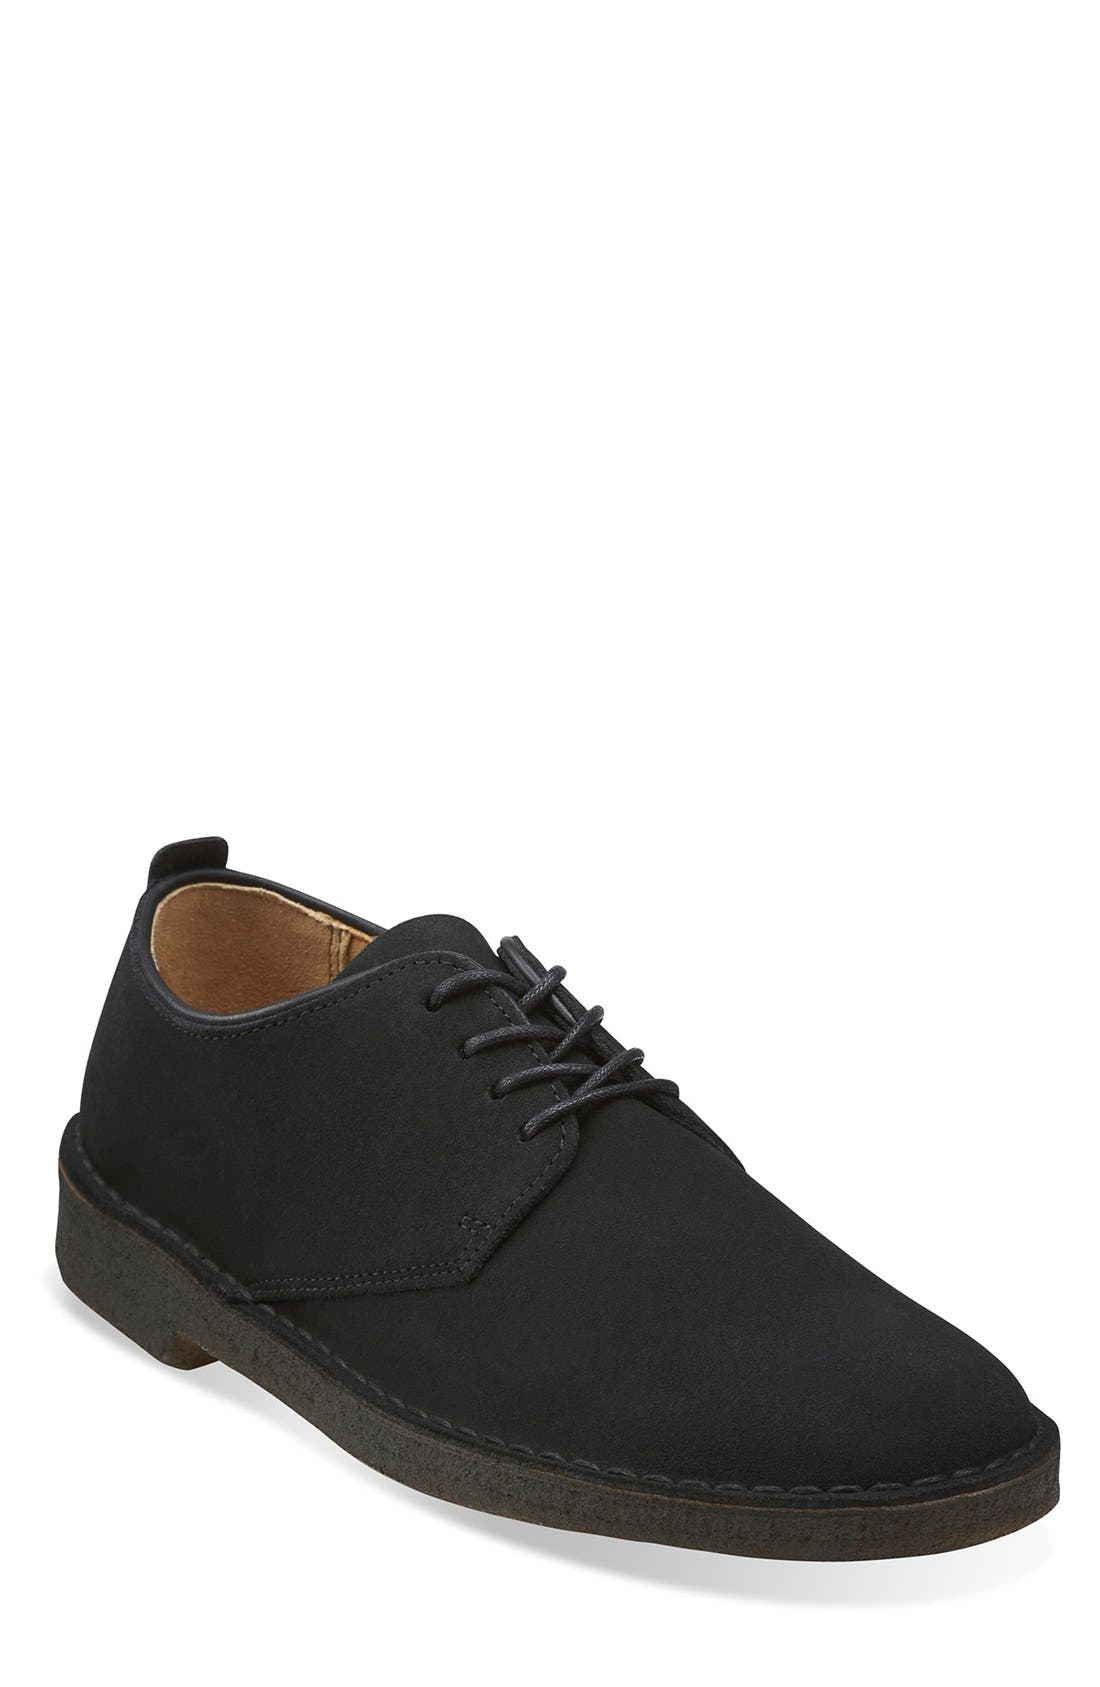 'Desert London' Plain Toe Derby,                         Main,                         color, BLACK SUEDE